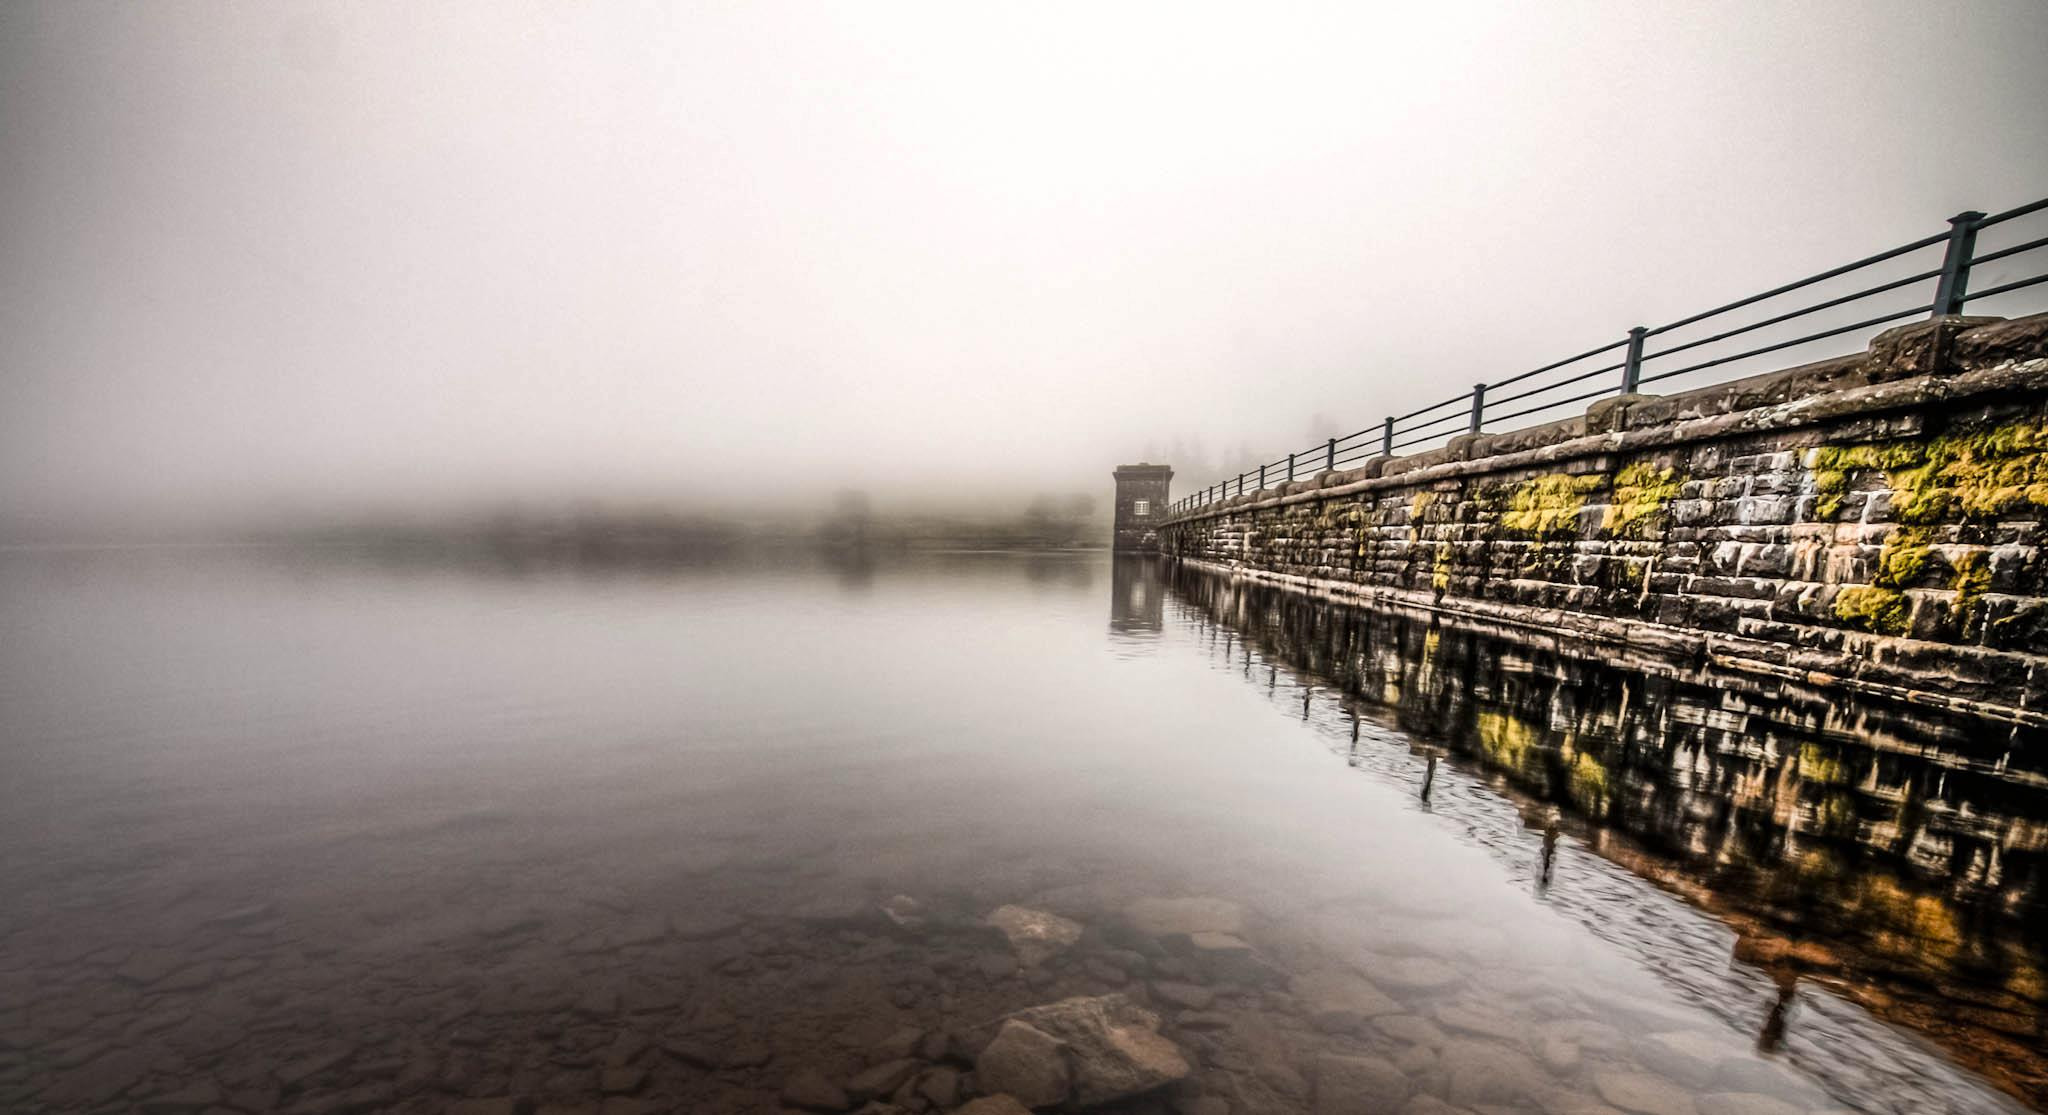 Photograph Gwyrne Fawr, Brecon Beacons, Wales: reservoir in the mist. This mist appeared from nowhere, and in t by Hugh Jones on 500px